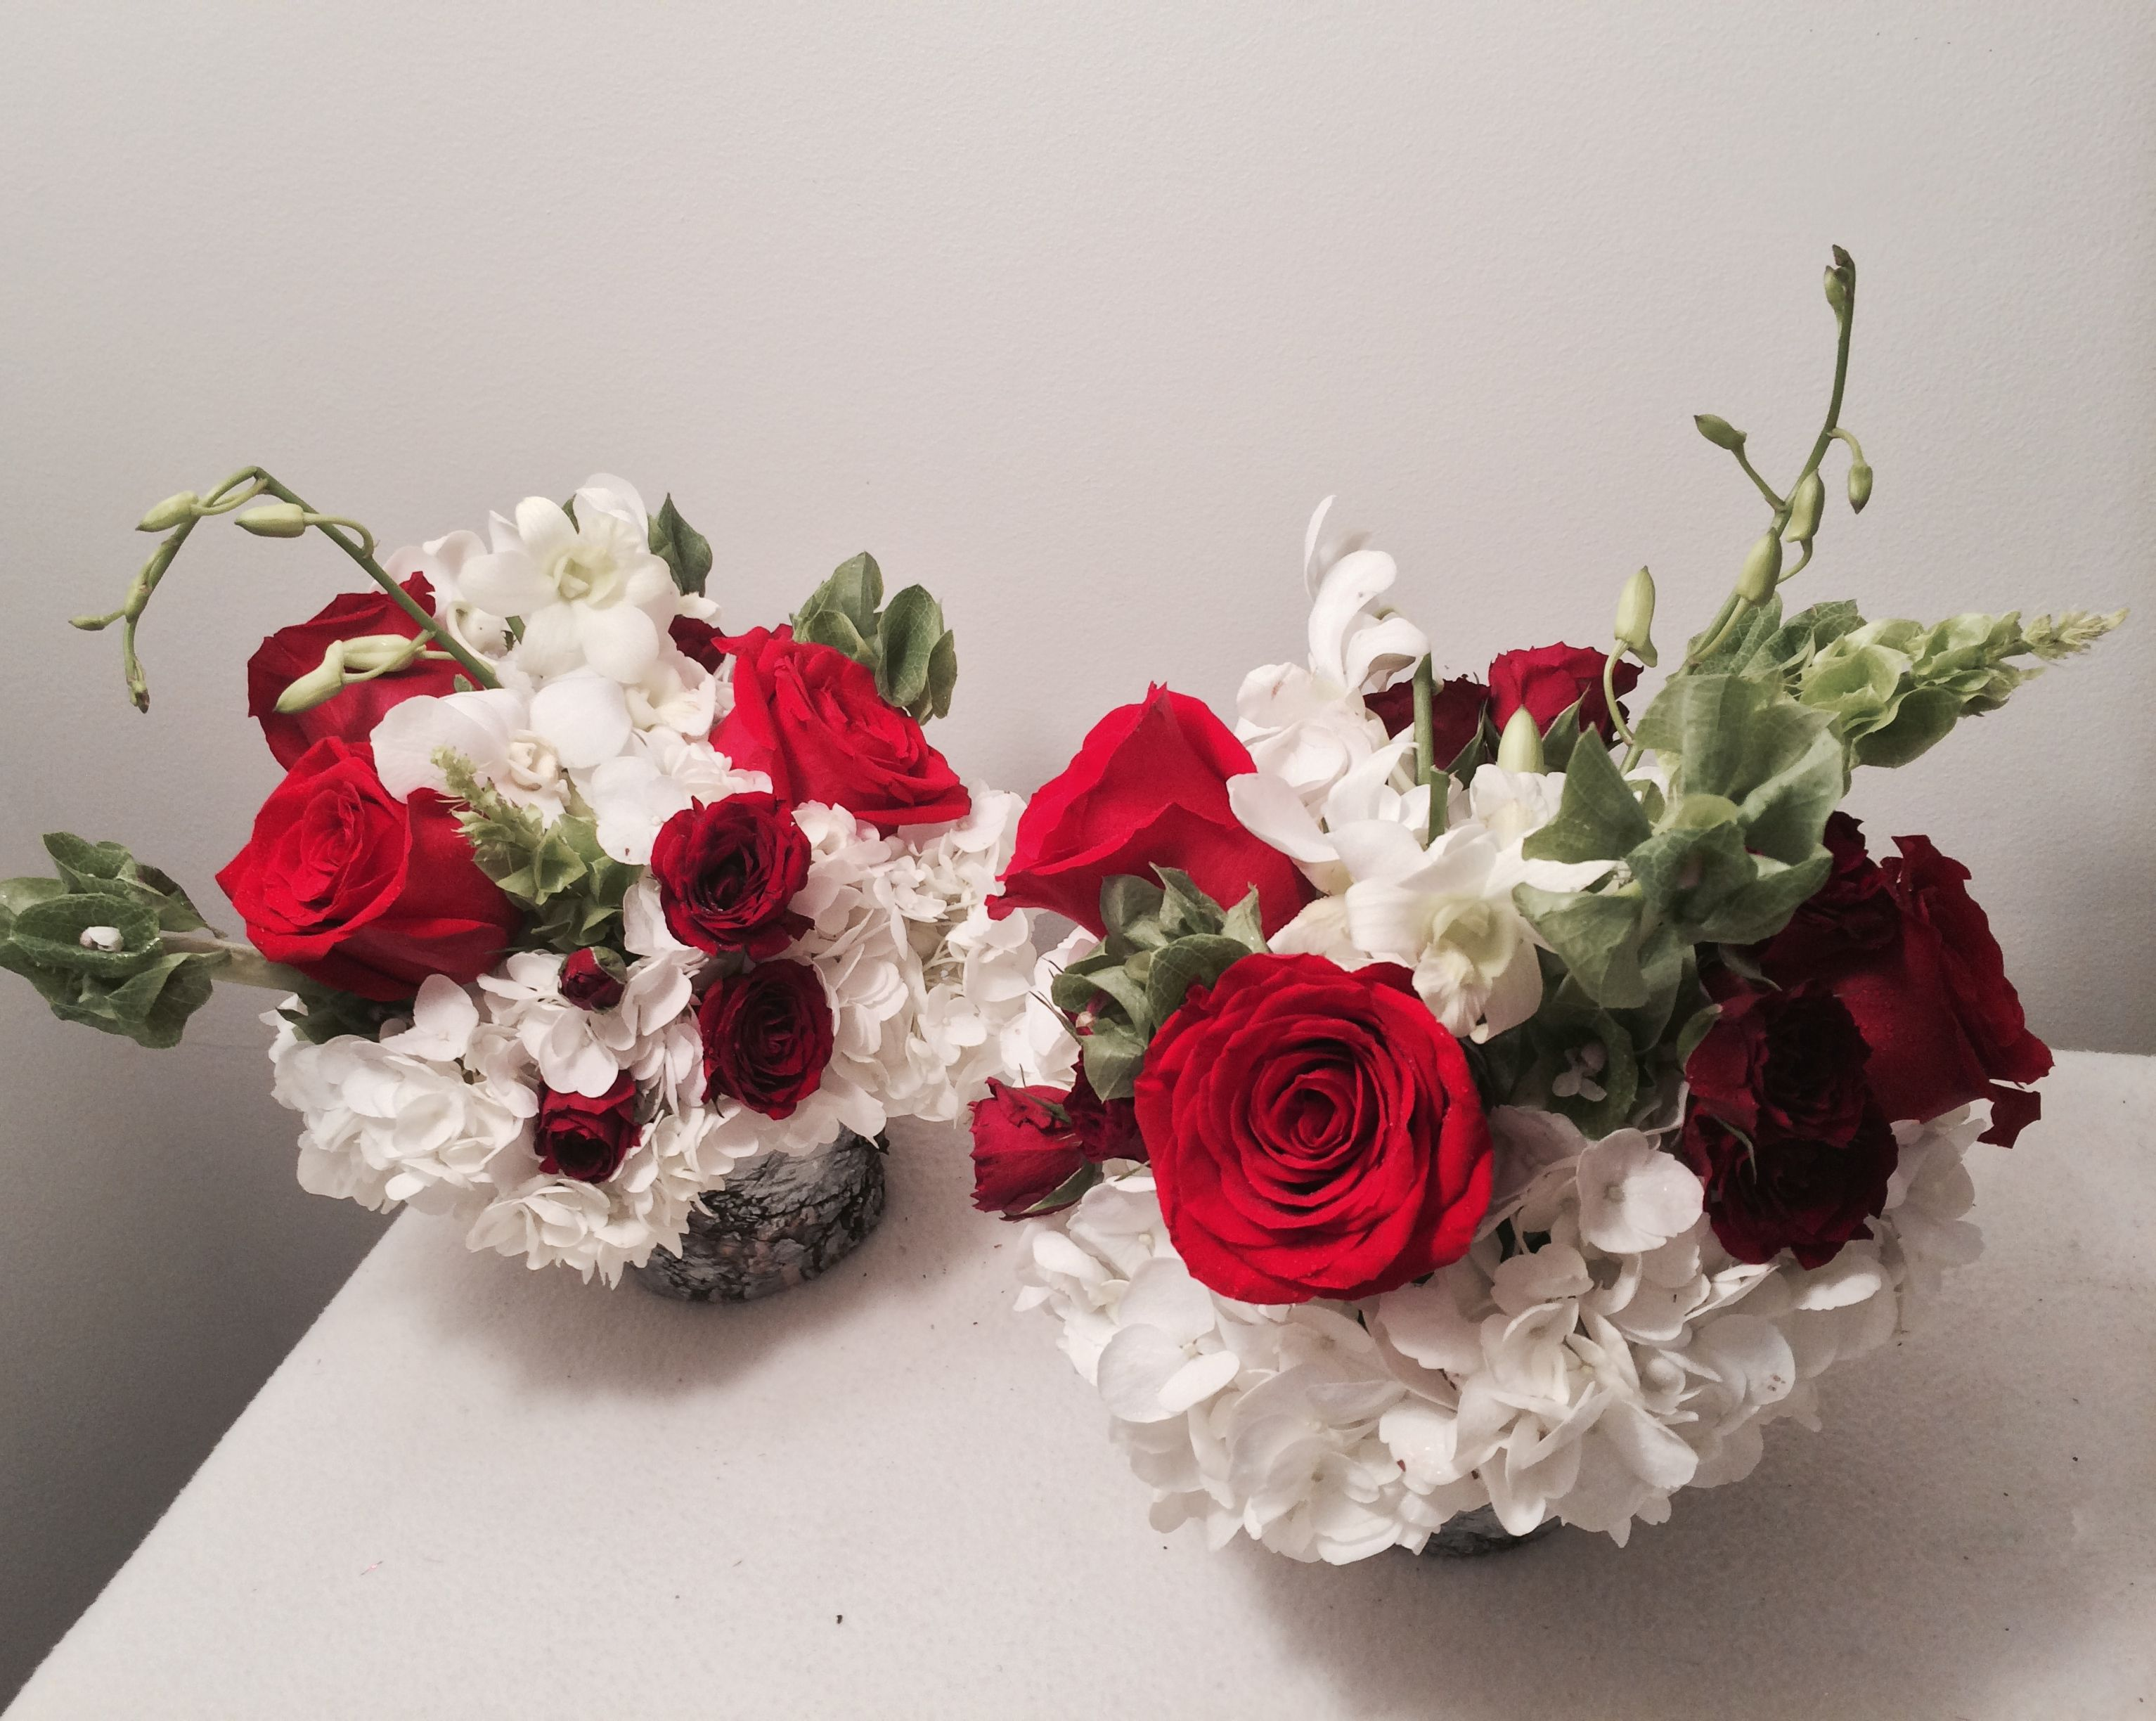 Blooms to celebrate the beauty of Christmas, sitting pretty in birch pots. Floral Sentiment: Bells of Ireland (Good Luck), Hydrangea (Pride), Orchids (Beauty + Friendship), Roses (Love),